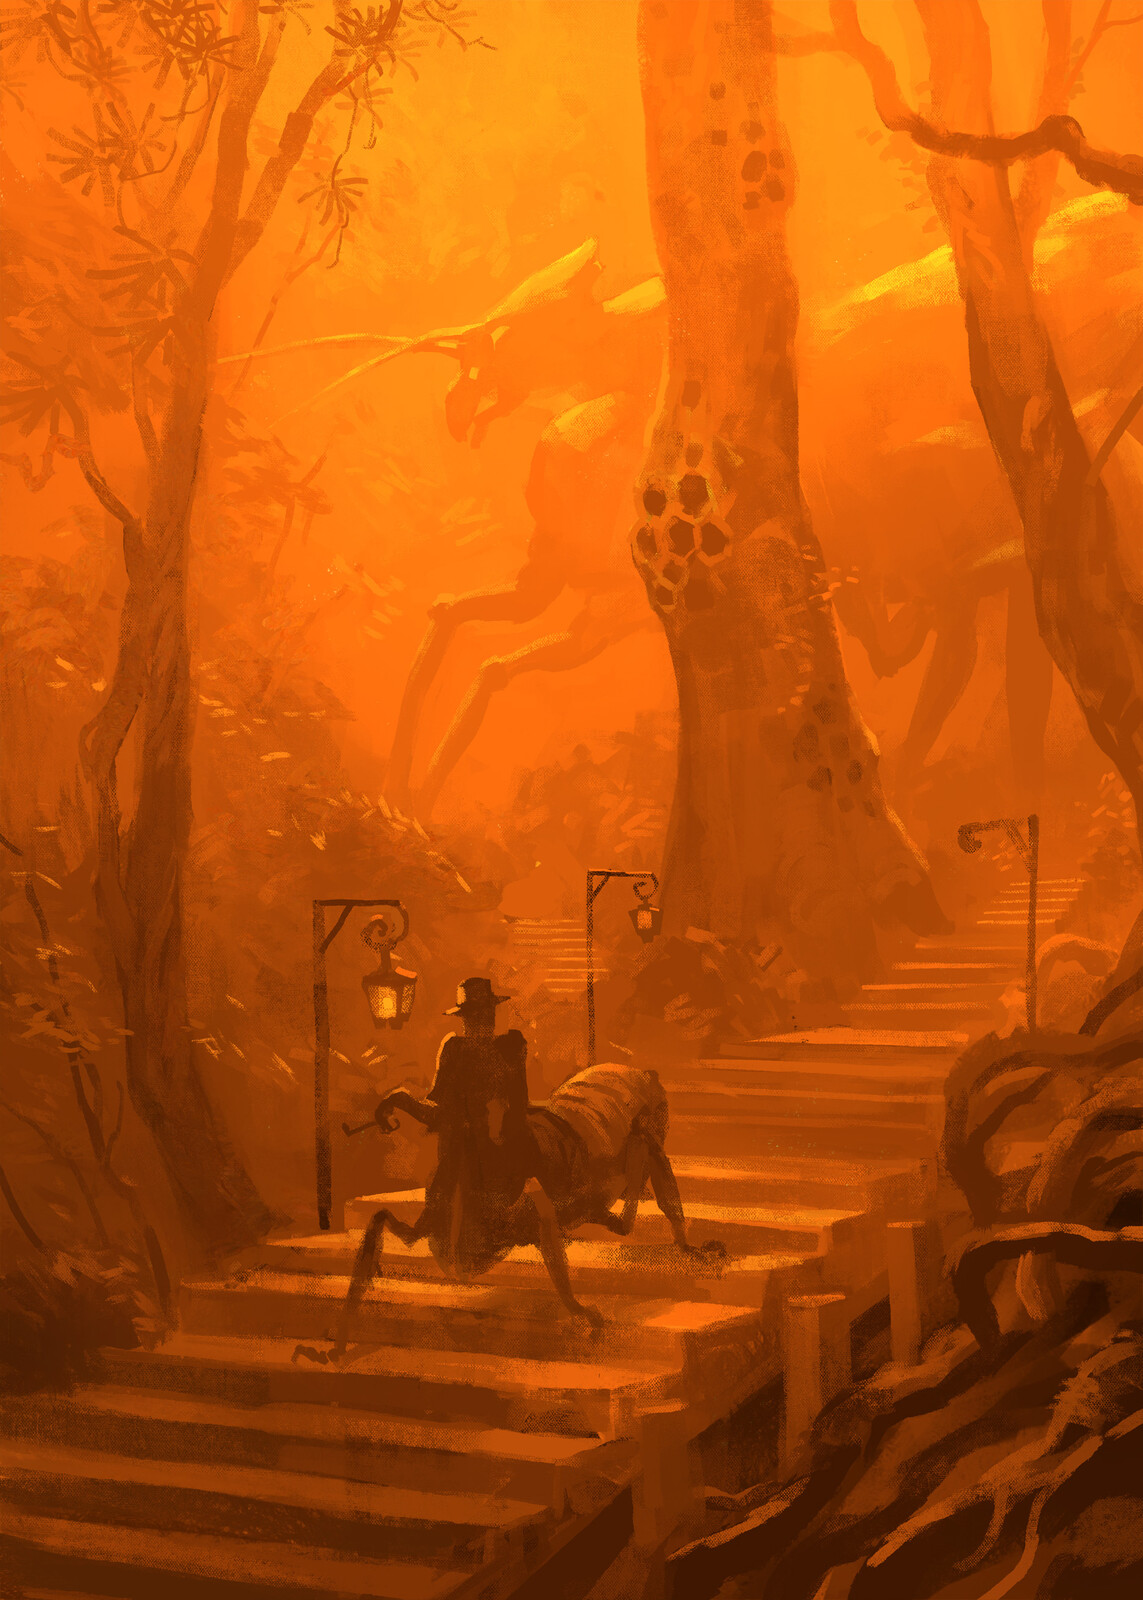 Tonal sketch based on the thumbnail I favored the most. I love orange. It's a very interesting color.